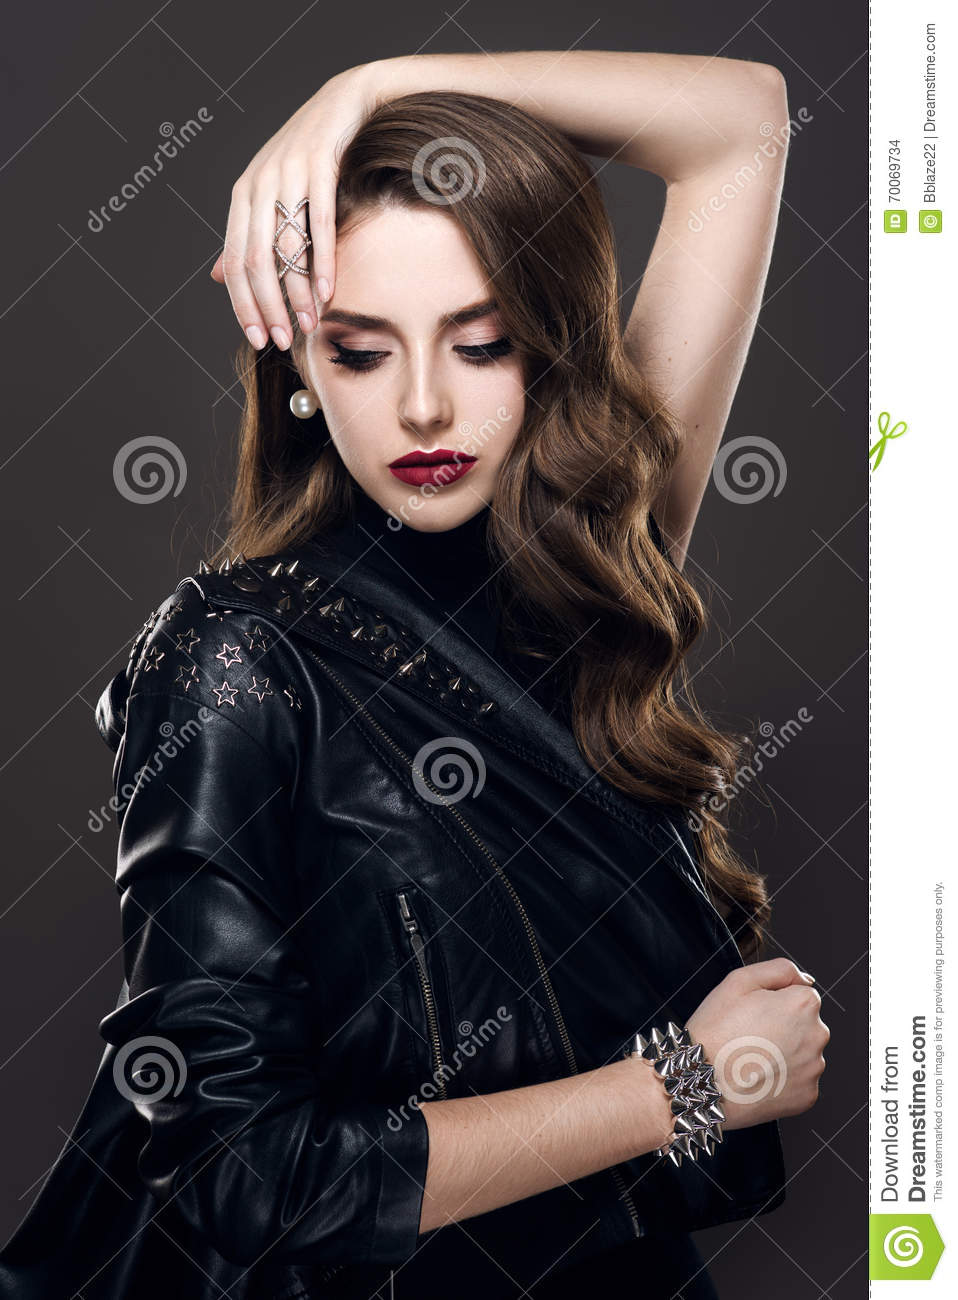 Glamorous Young Beautiful Rock Style Girl In Black Leather ...